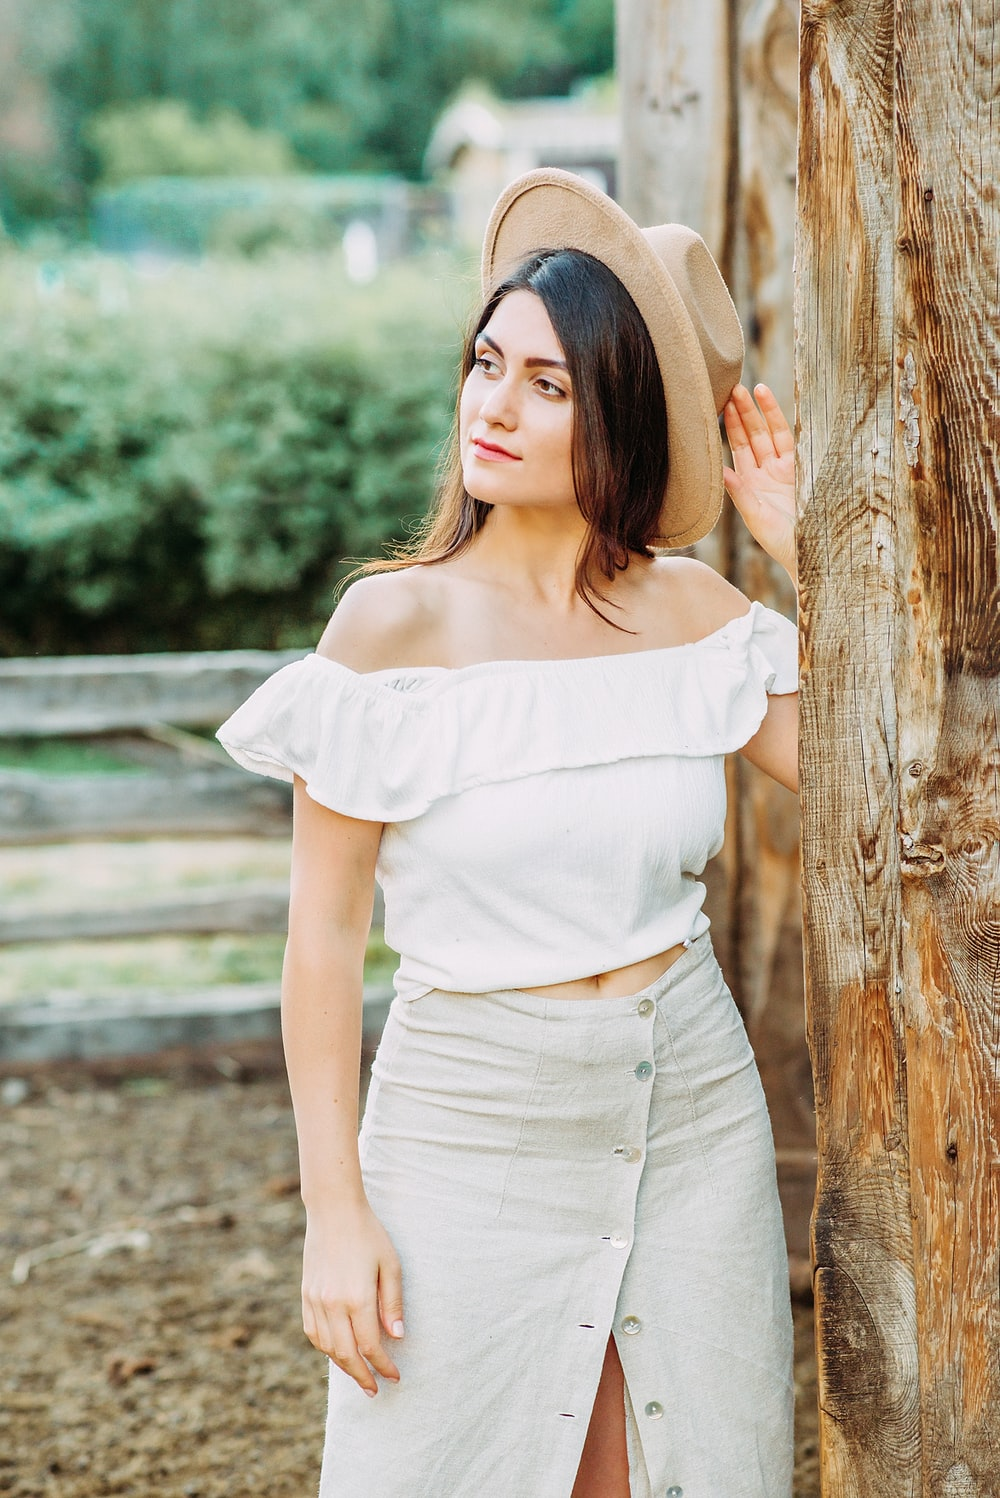 woman in white shirt leaning on brown wooden post during daytime